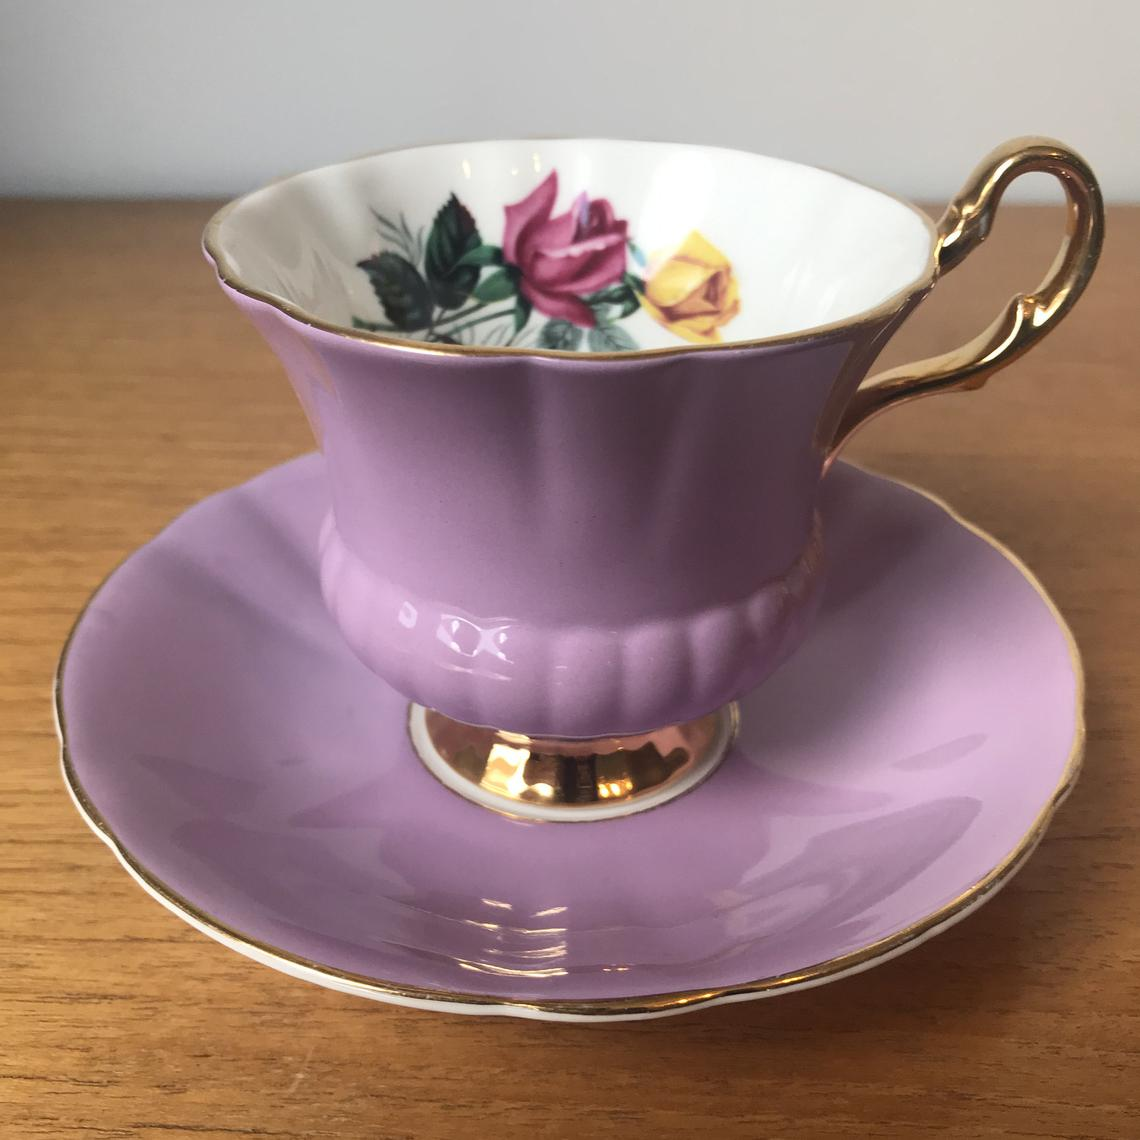 Purple Tea Cup and Saucer, Crown Prince Yellow and Pink Roses China Teacup and Saucer, Vintage Gift